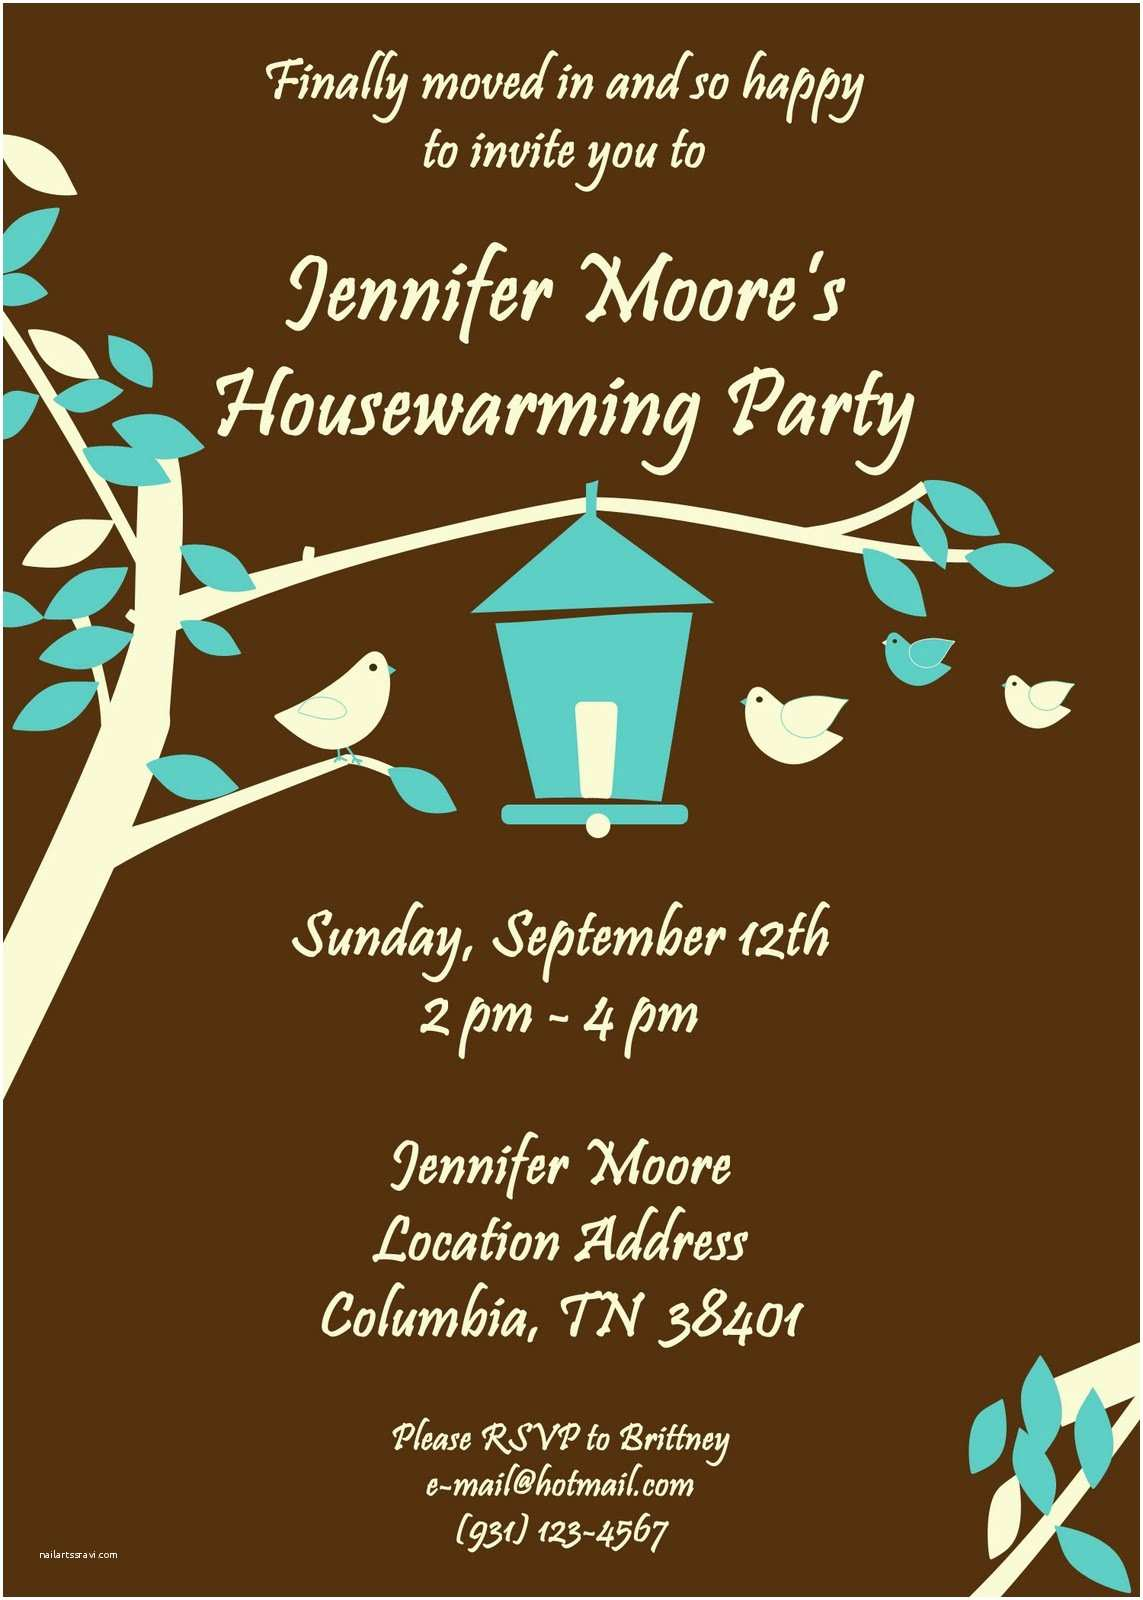 Housewarming Party Invites Fanci Cakes & More Housewarming Party Cake & Invitation